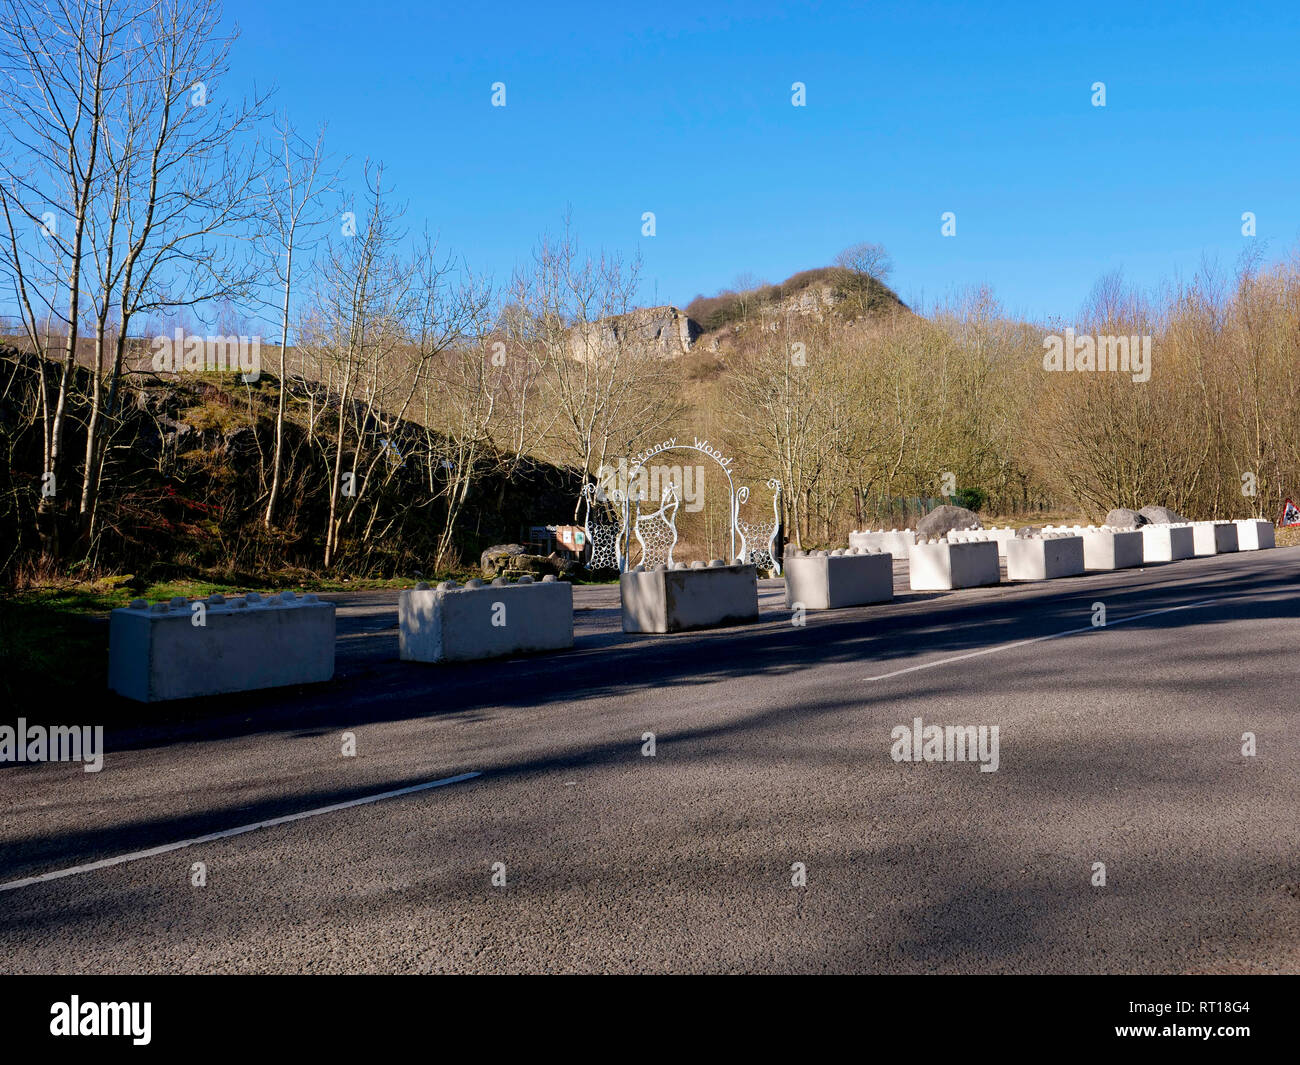 Wirksworth, Derbyshire Dales, UK. 27th Feb 2019. Concrete blocks placed on the carpark to protect Wirksworth beauty spot owned by Wirksworth Town Council (Labour) after Derbyshire Dales District Council (Conservative) voted on relocating a GRT Travellers camp on disputed land adjacent to Stoney Wood, Wirksworth, Derbyshire Dales. Wirksworth Town Council are seeking legal advise to try & protect the trees, rare wild orchids & other wildlife in and around this Sight of Special scientific Interest. Credit: Doug Blane/Alamy Live News - Stock Image